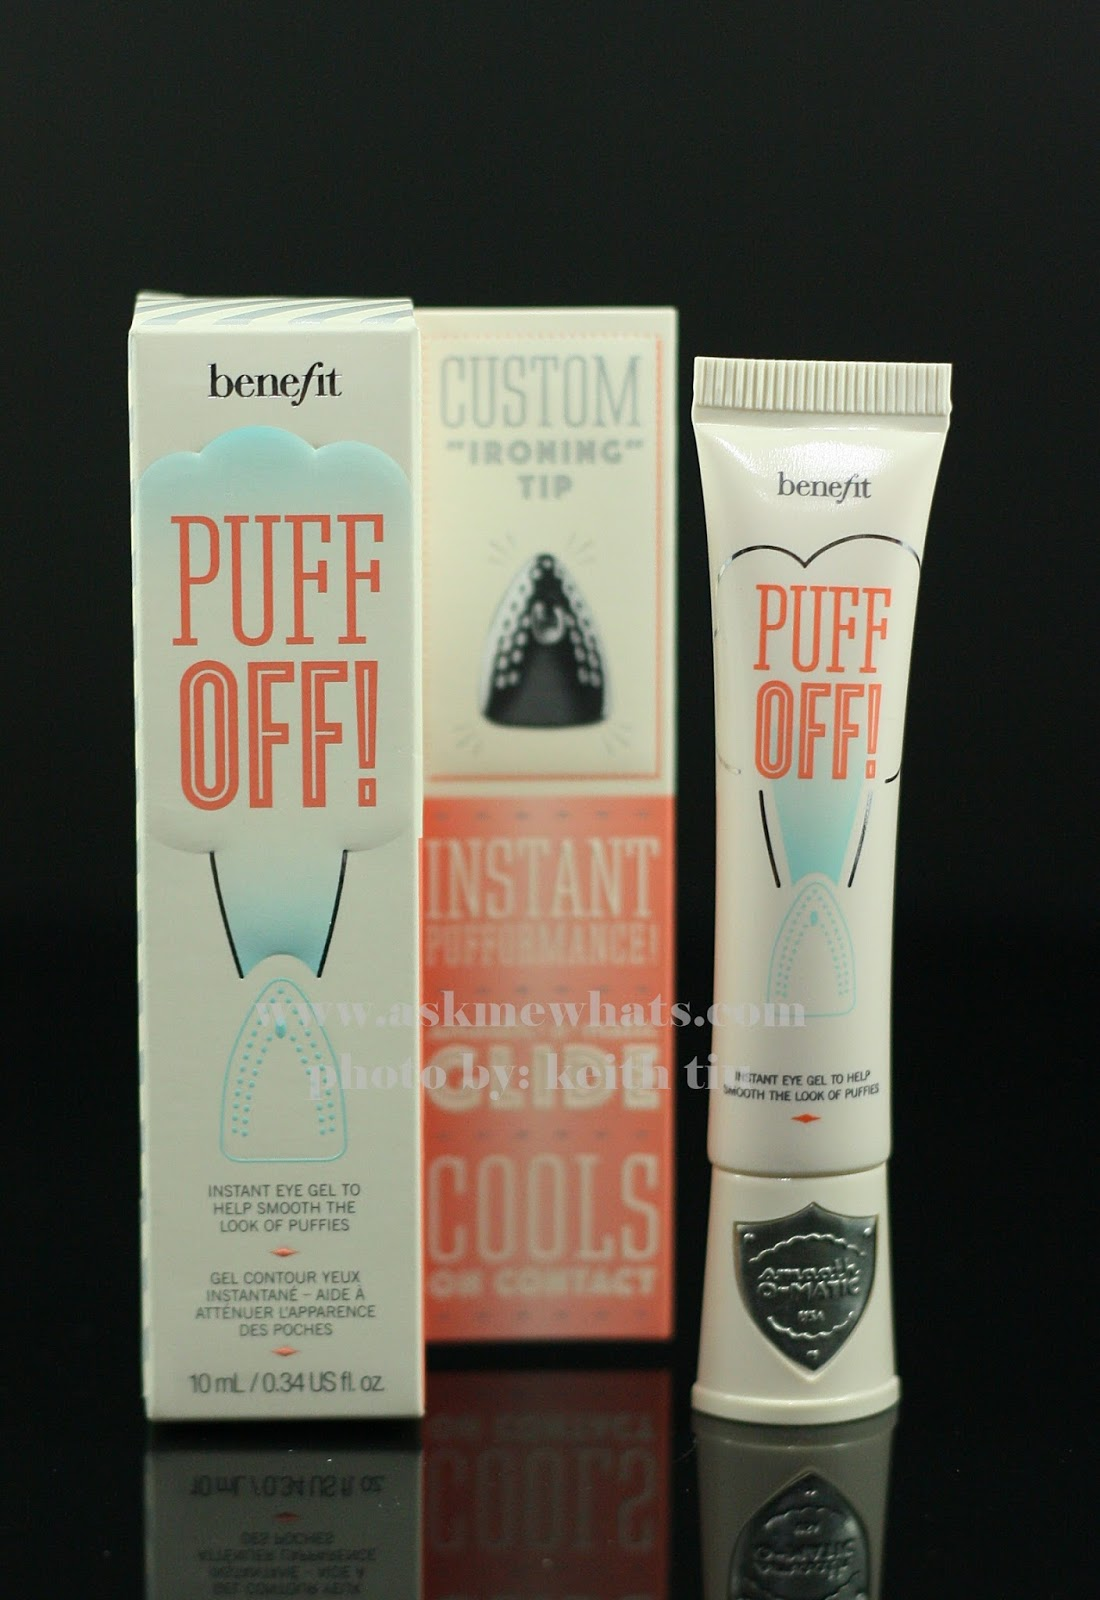 A photo of Benefit Puff Off! Instant Eye Gel